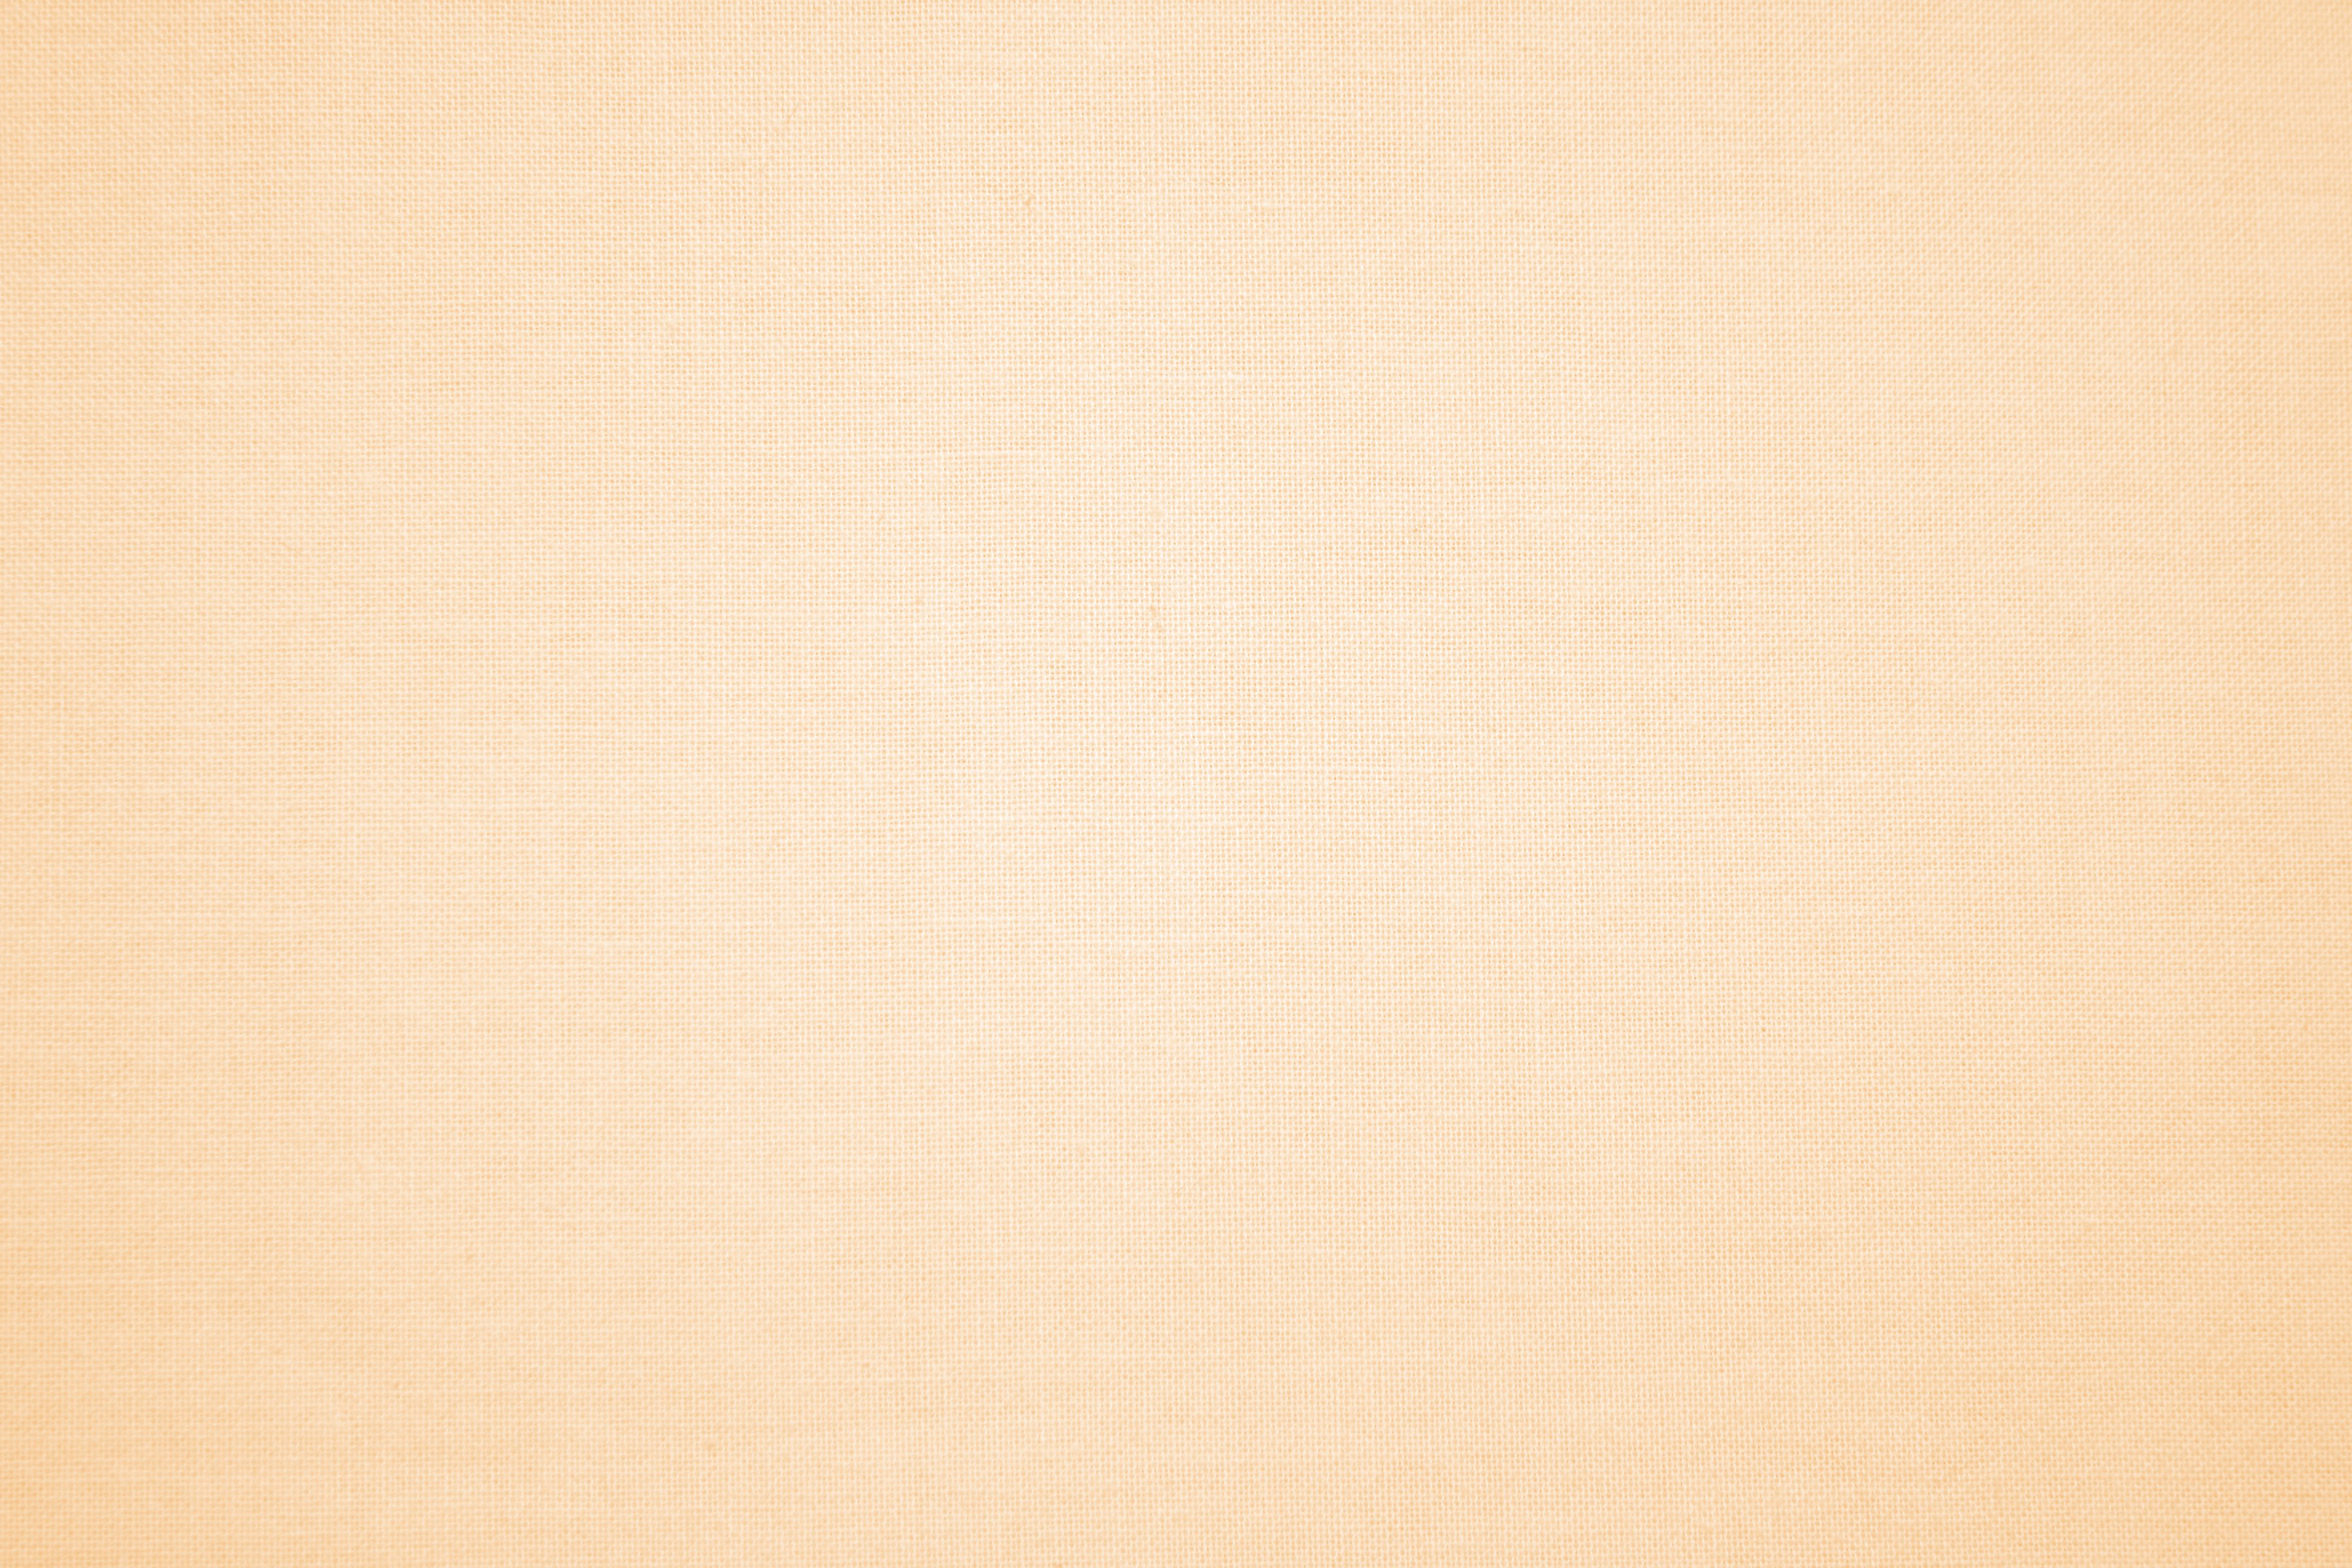 Free Download Peach Colored Canvas Fabric Texture Picture